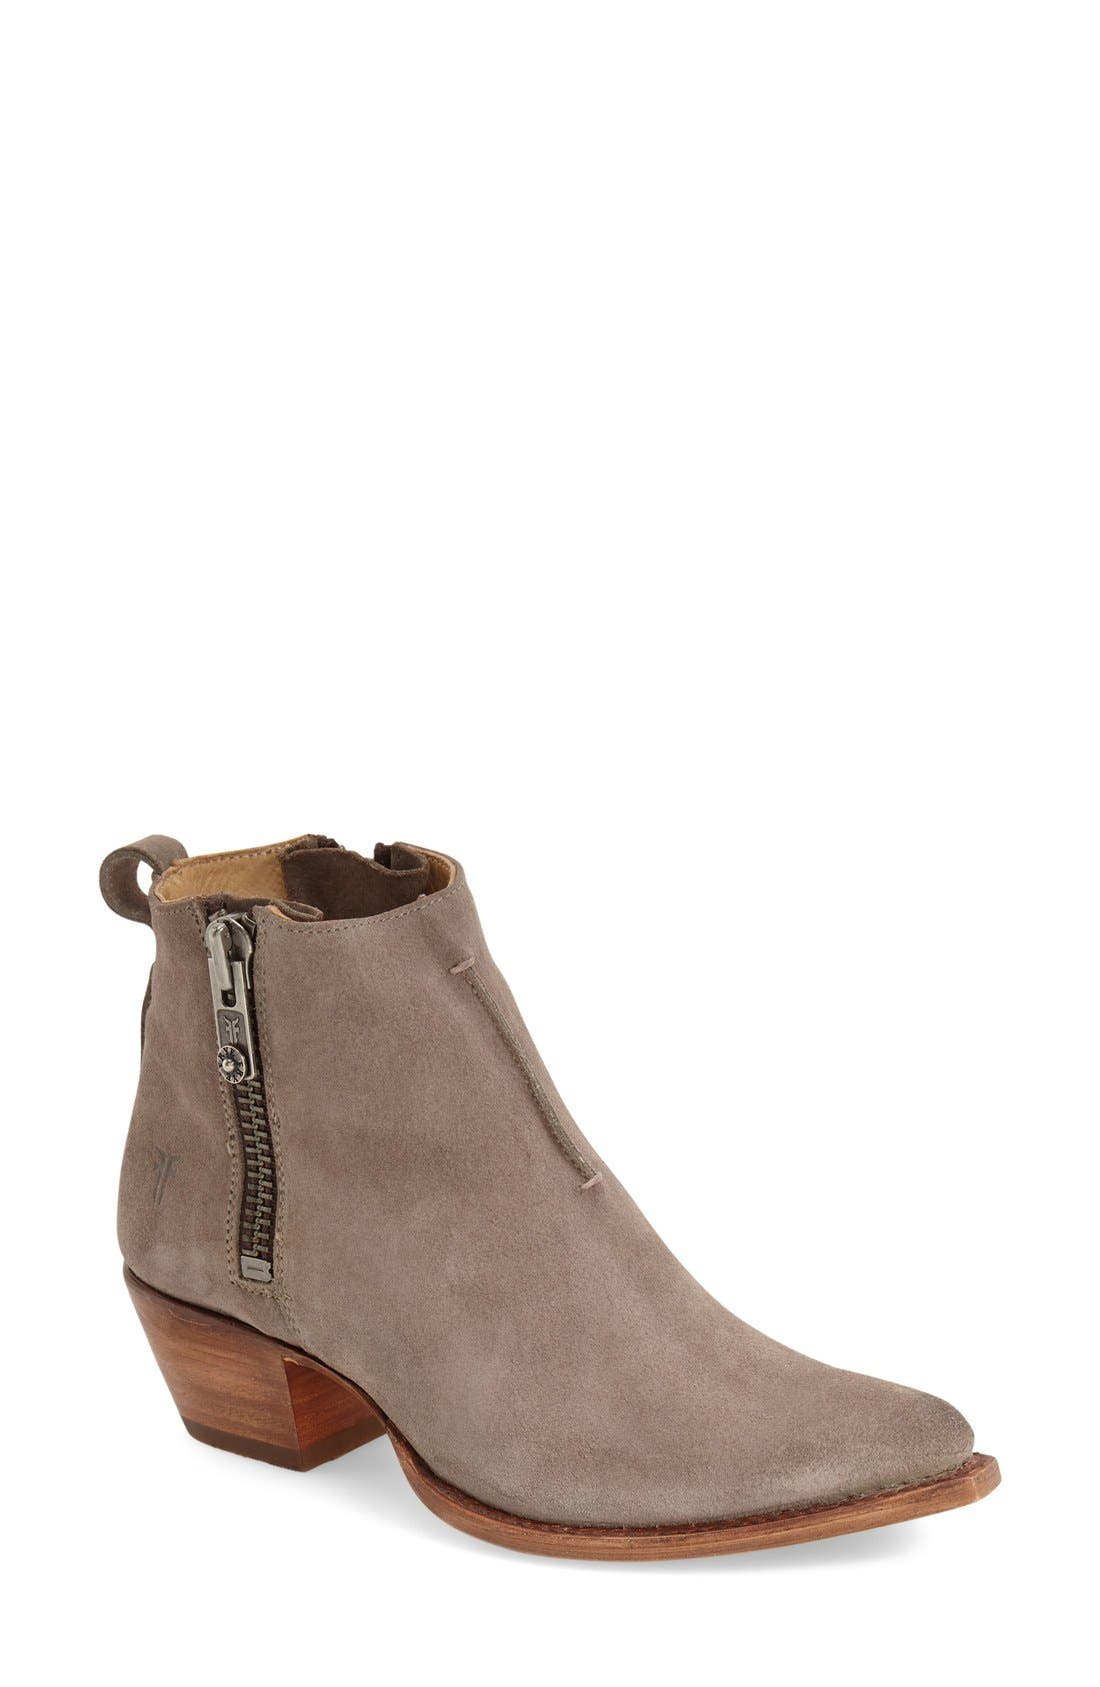 'Sacha' Washed Leather Ankle Boot,                             Main thumbnail 1, color,                             Dark Grey Suede